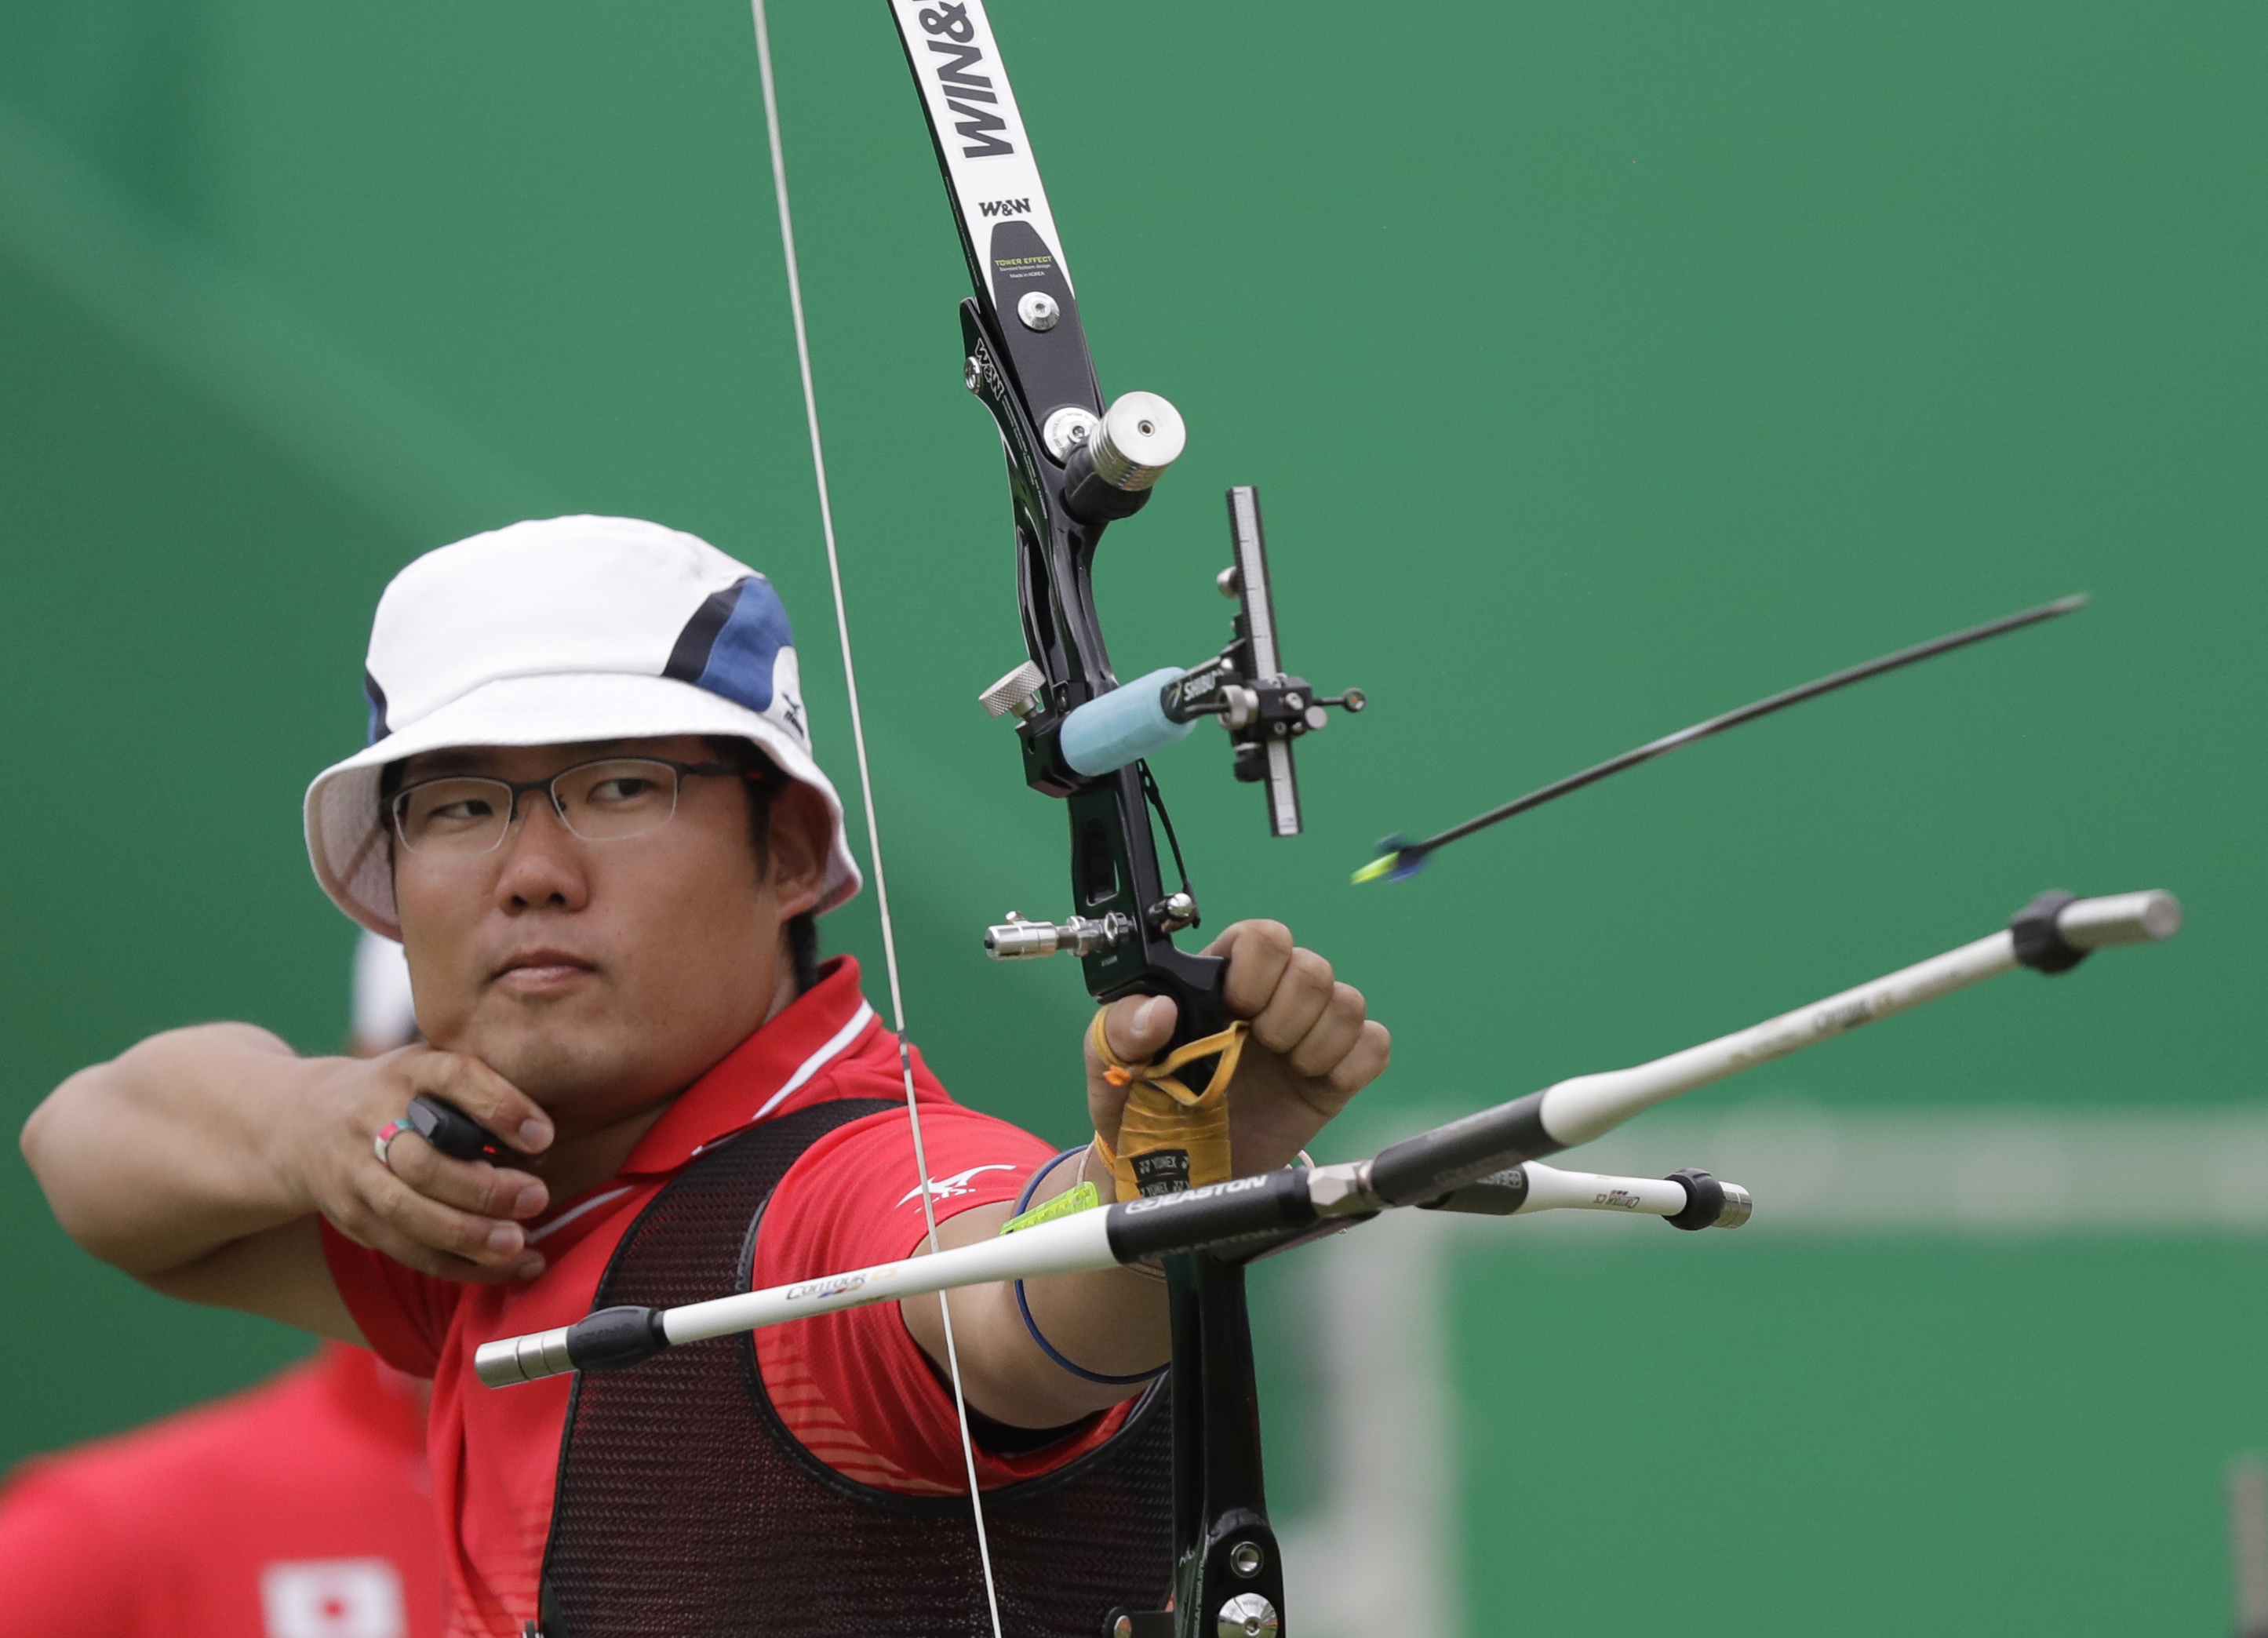 Takaharu Furukawa releases his arrow during an elimination round of the individual archery competition at the 2016 Summer Olympics in Rio de Janeiro on Wednesday. | AP